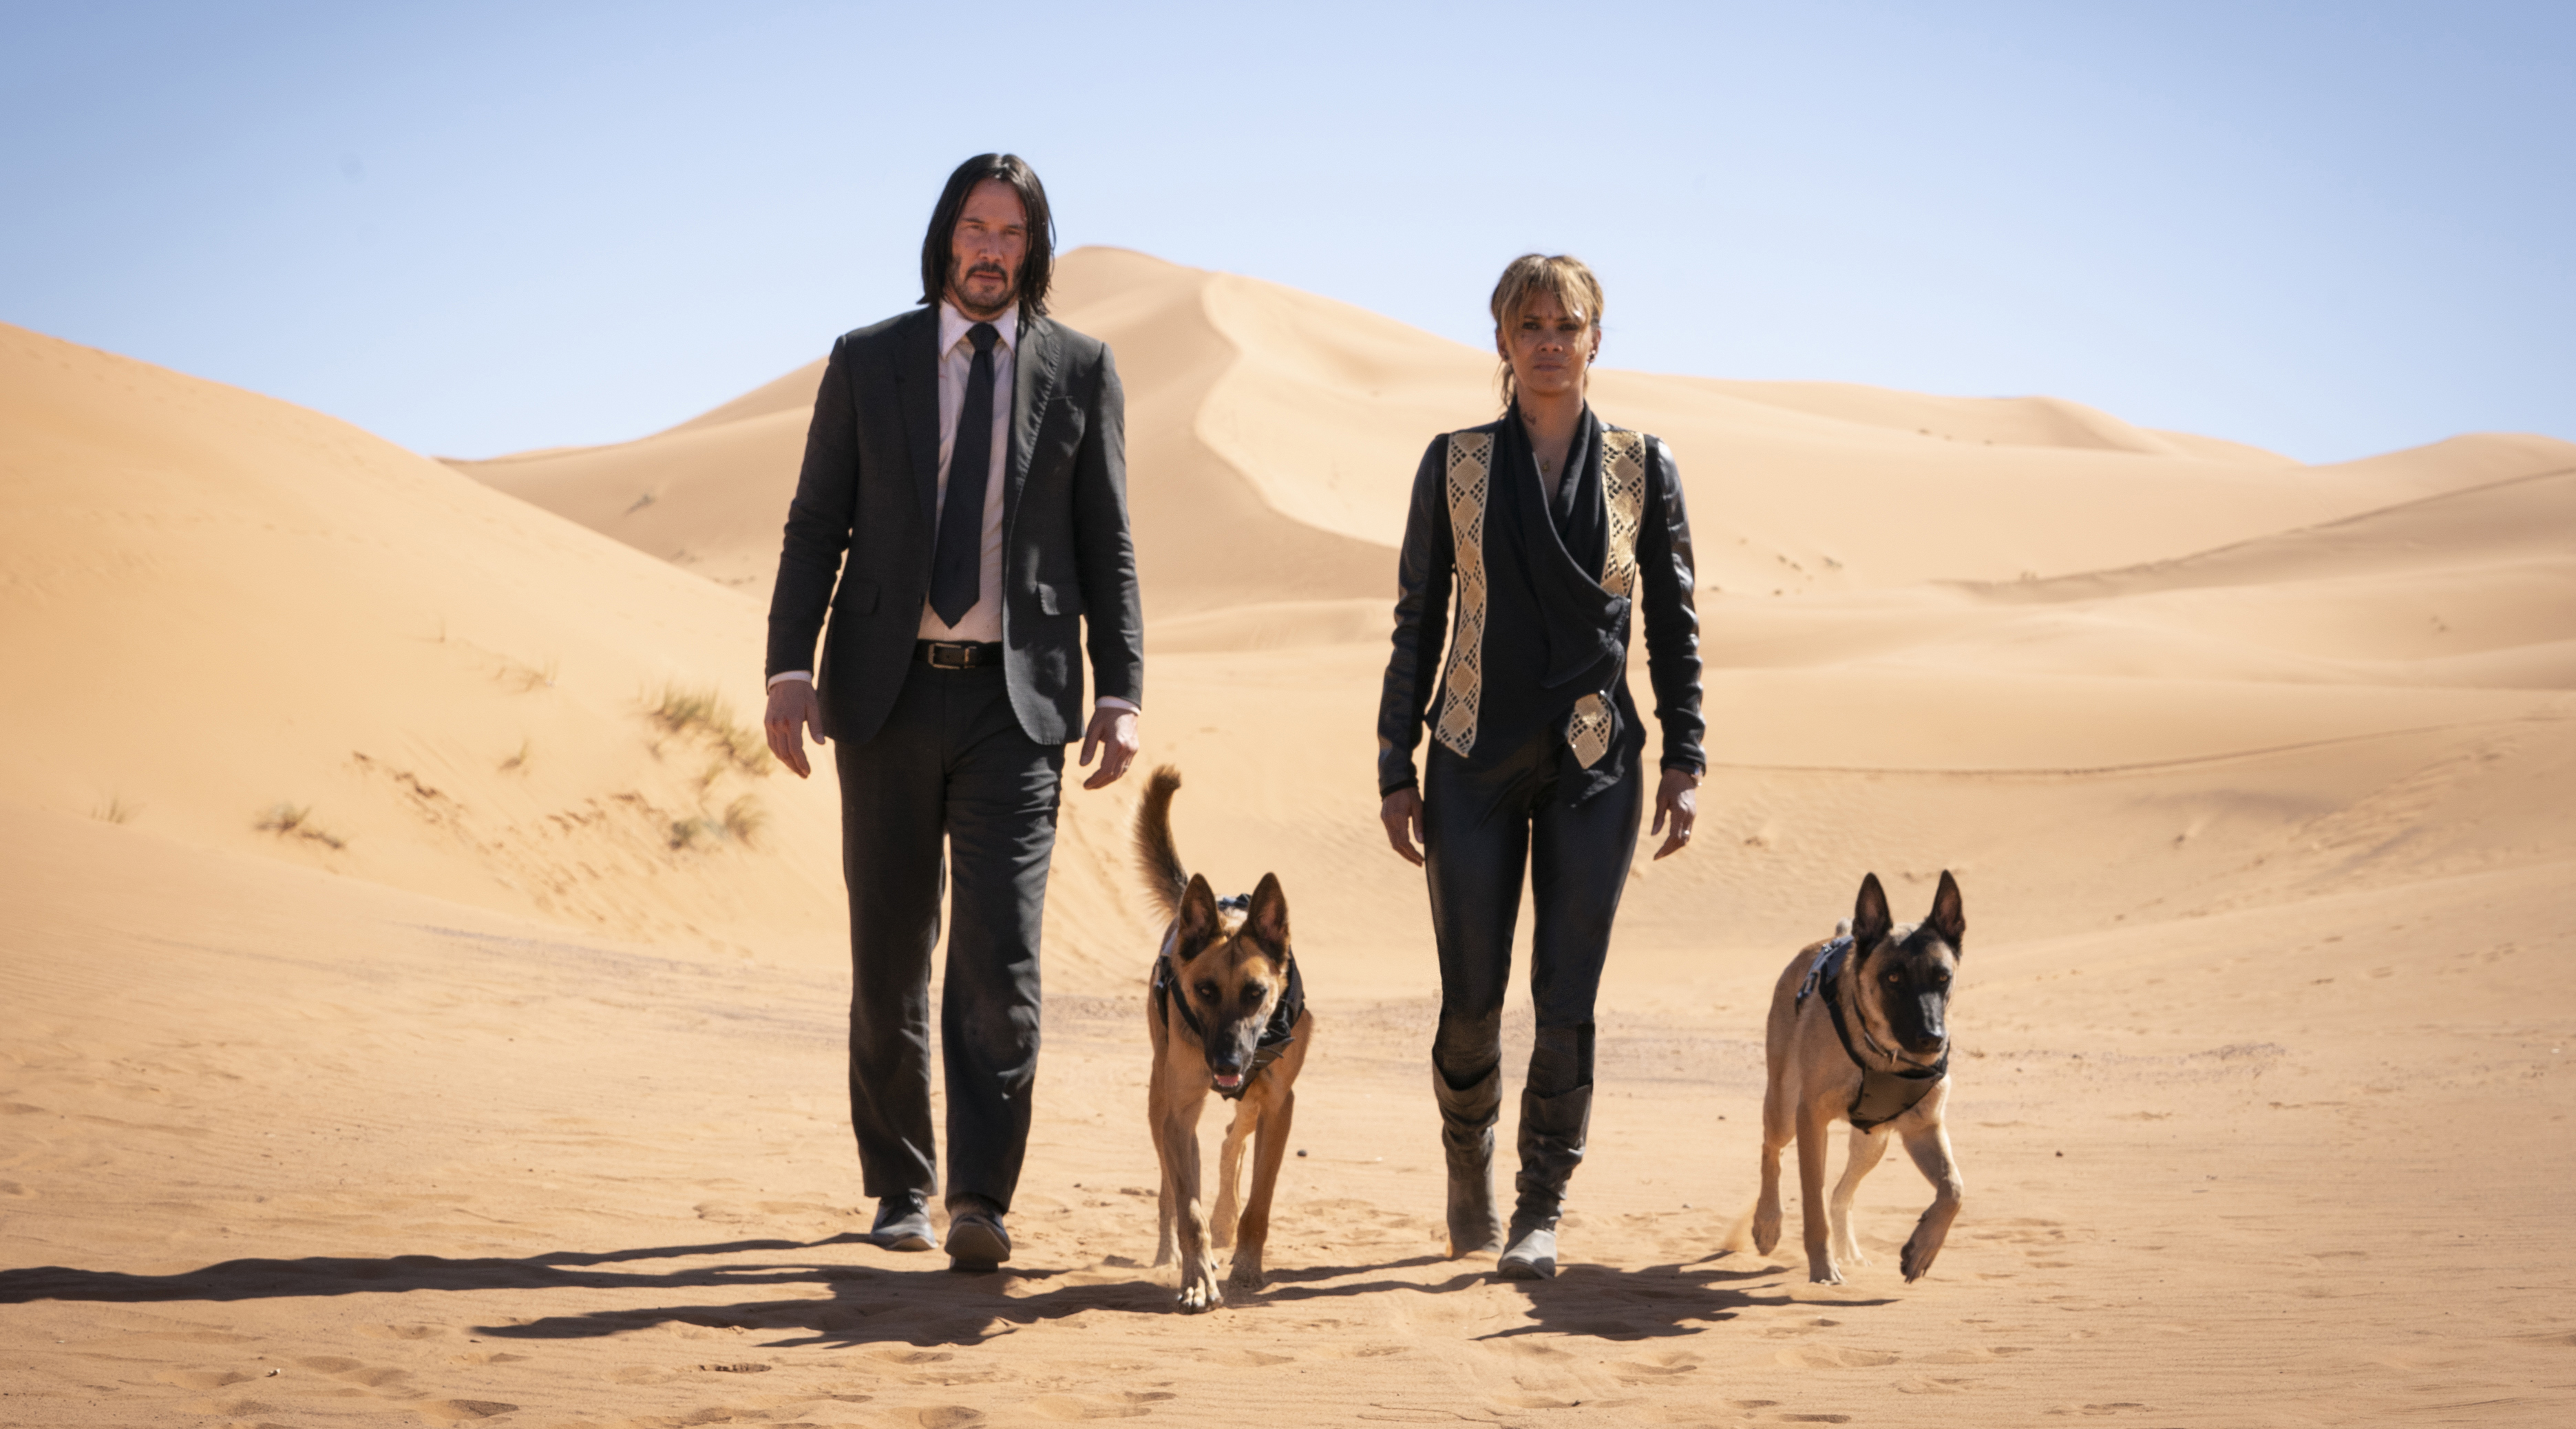 John Wick: Chapter 3': How It Trained Two Dogs Into Action